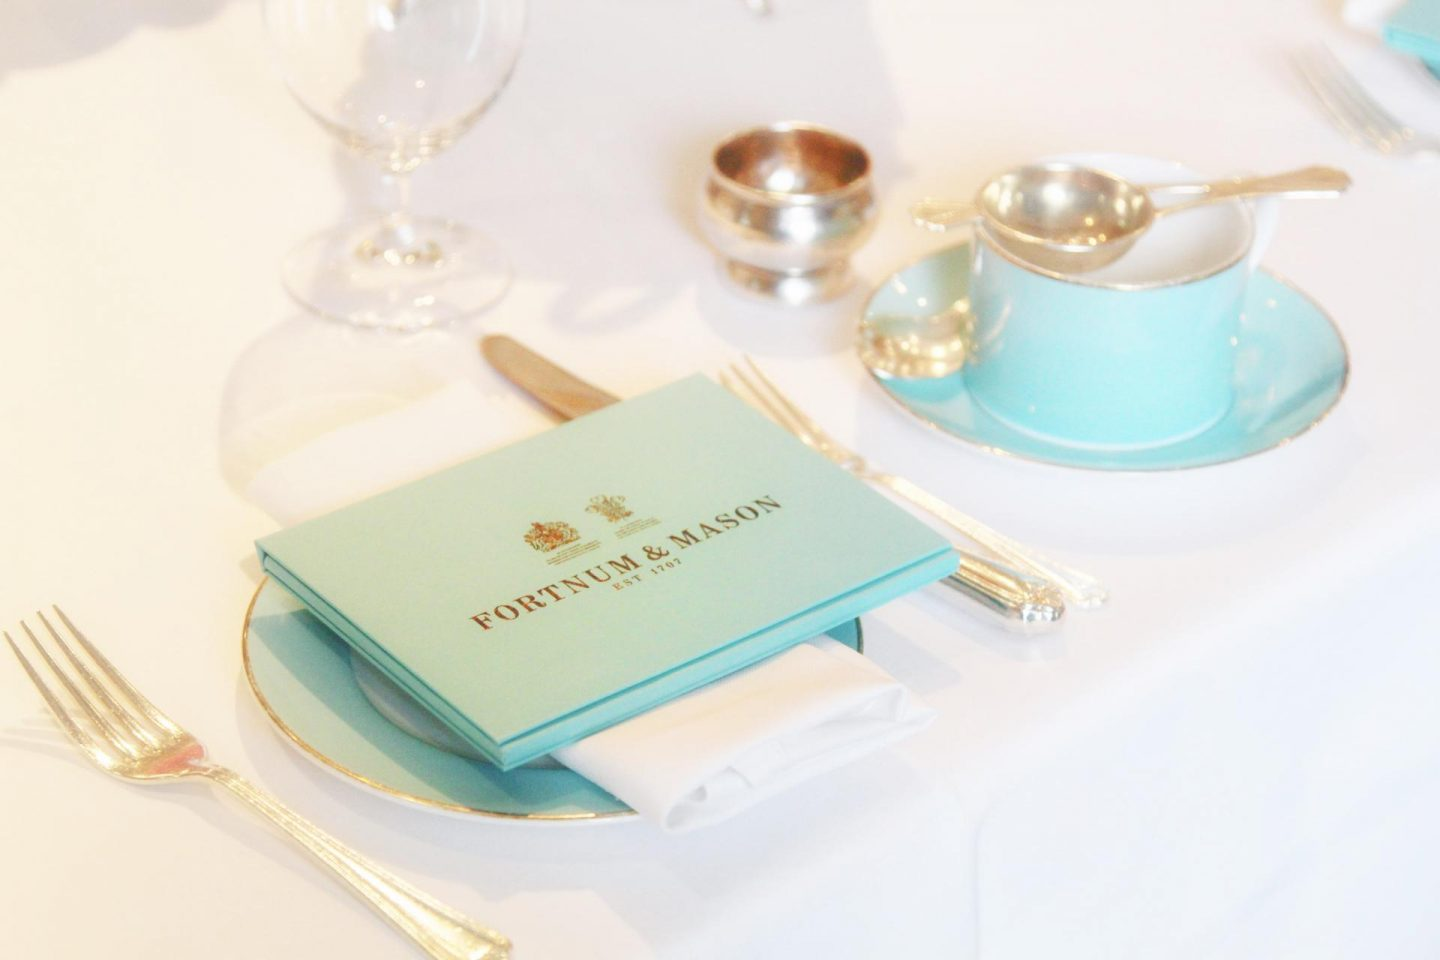 Tea Time at Fortnum & Mason